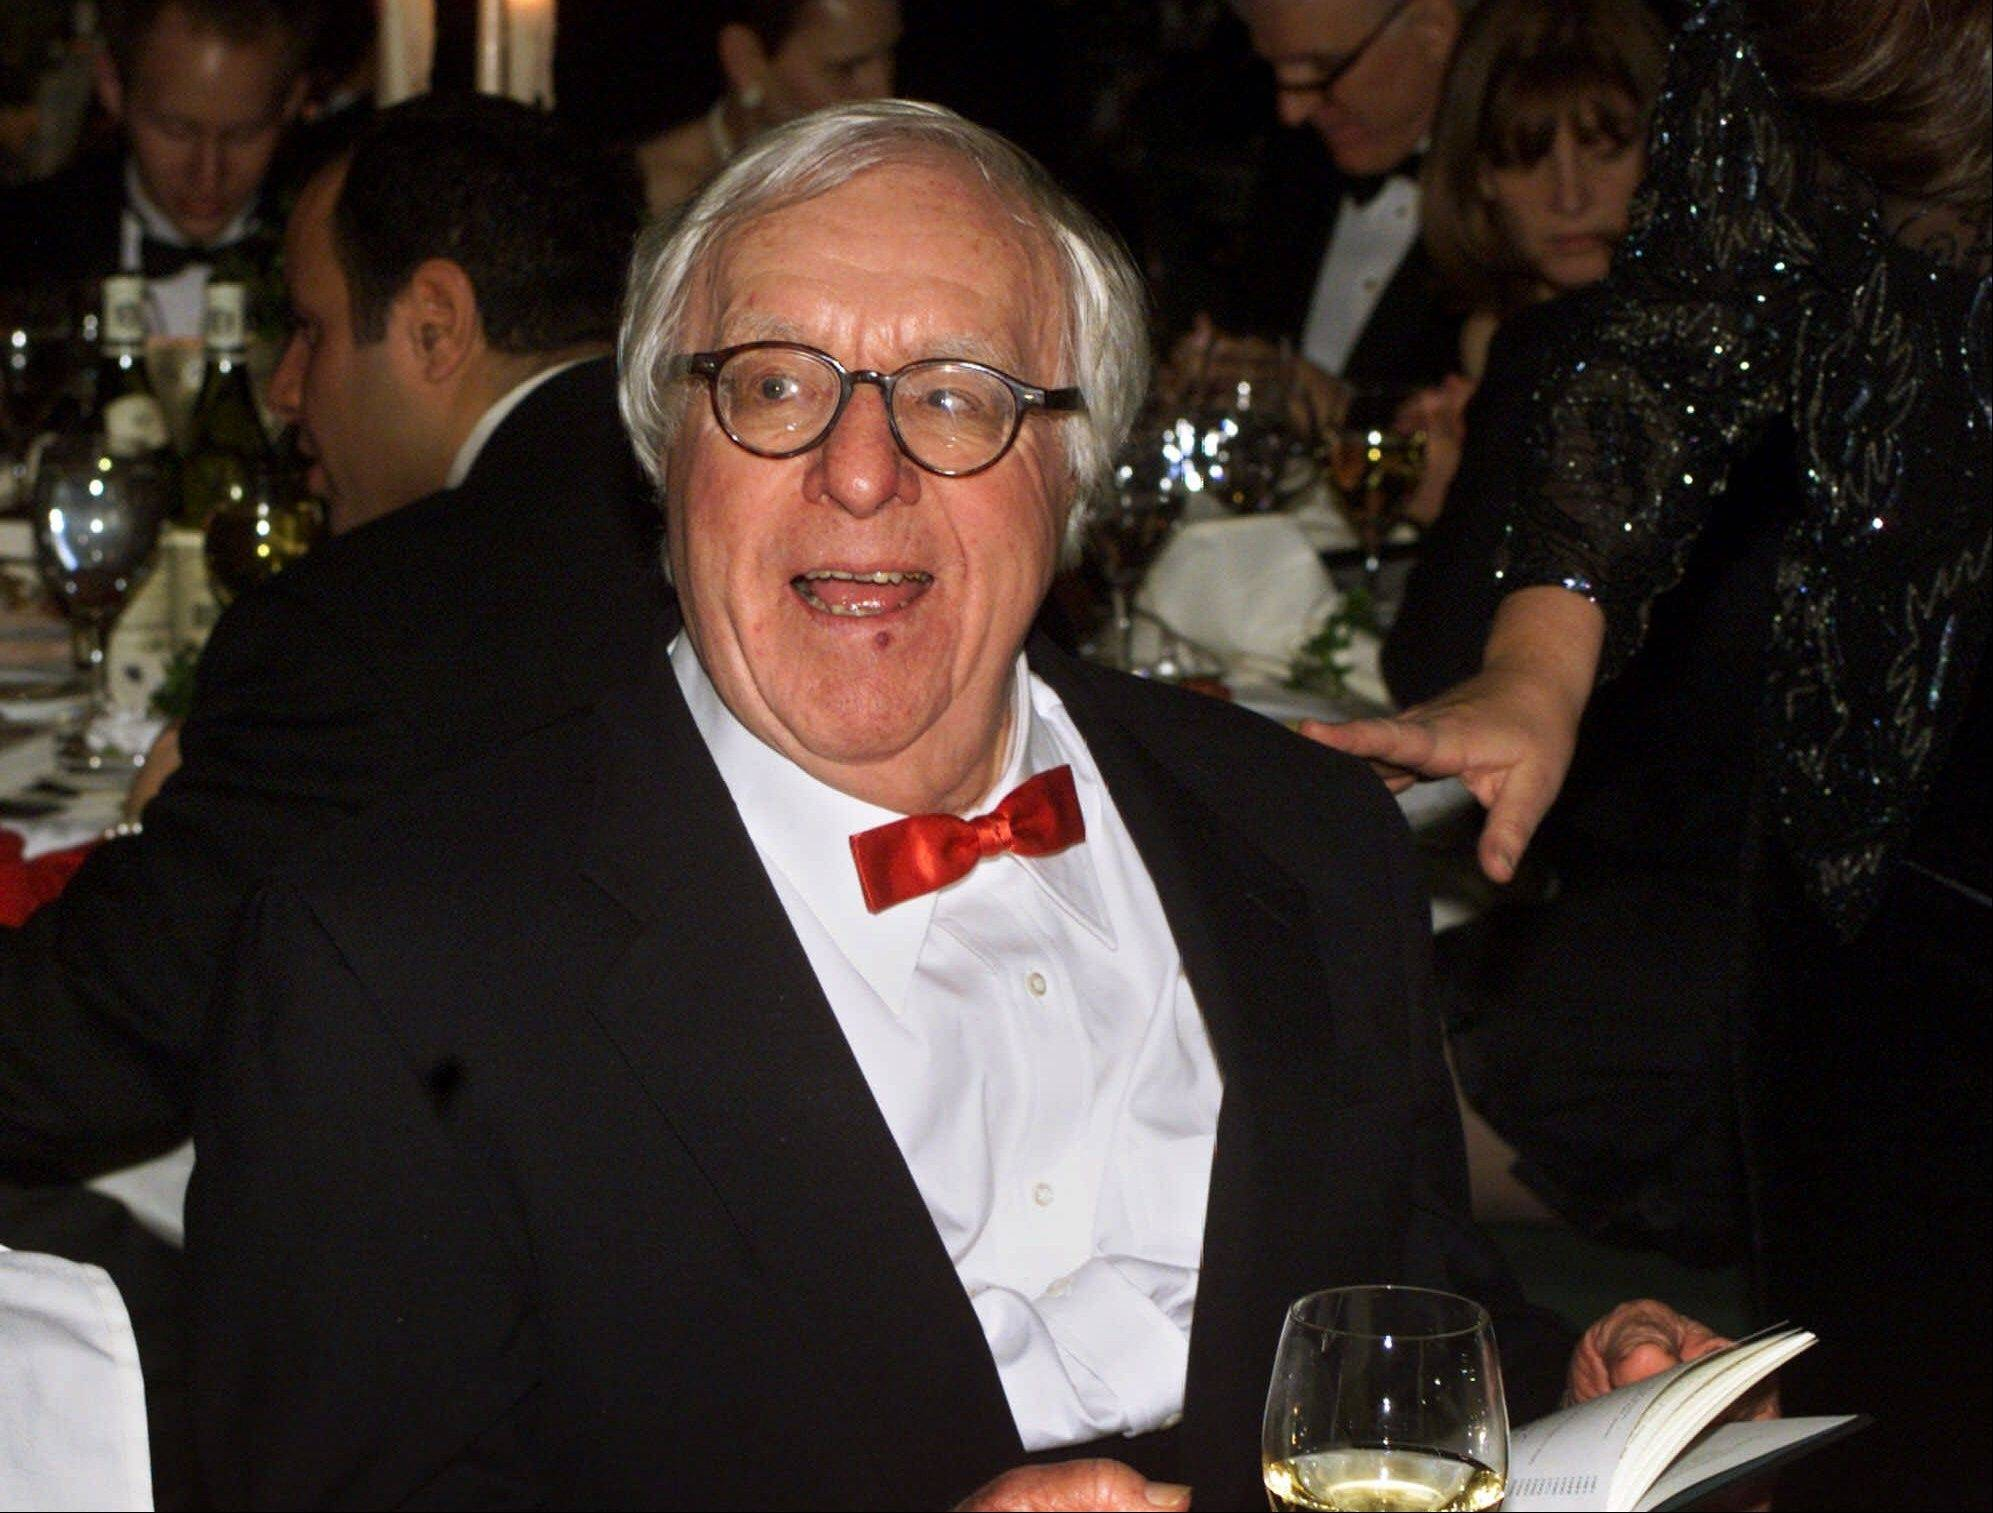 This Nov. 15, 2000 file photo shows science fiction writer Ray Bradbury at the National Book Awards in New York where he was given the Medal for Distinguished Contribution to American Letters. Bradbury, who wrote everything from science-fiction and mystery to humor, died Tuesday, June 5, 2012 in Southern California. He was 91.